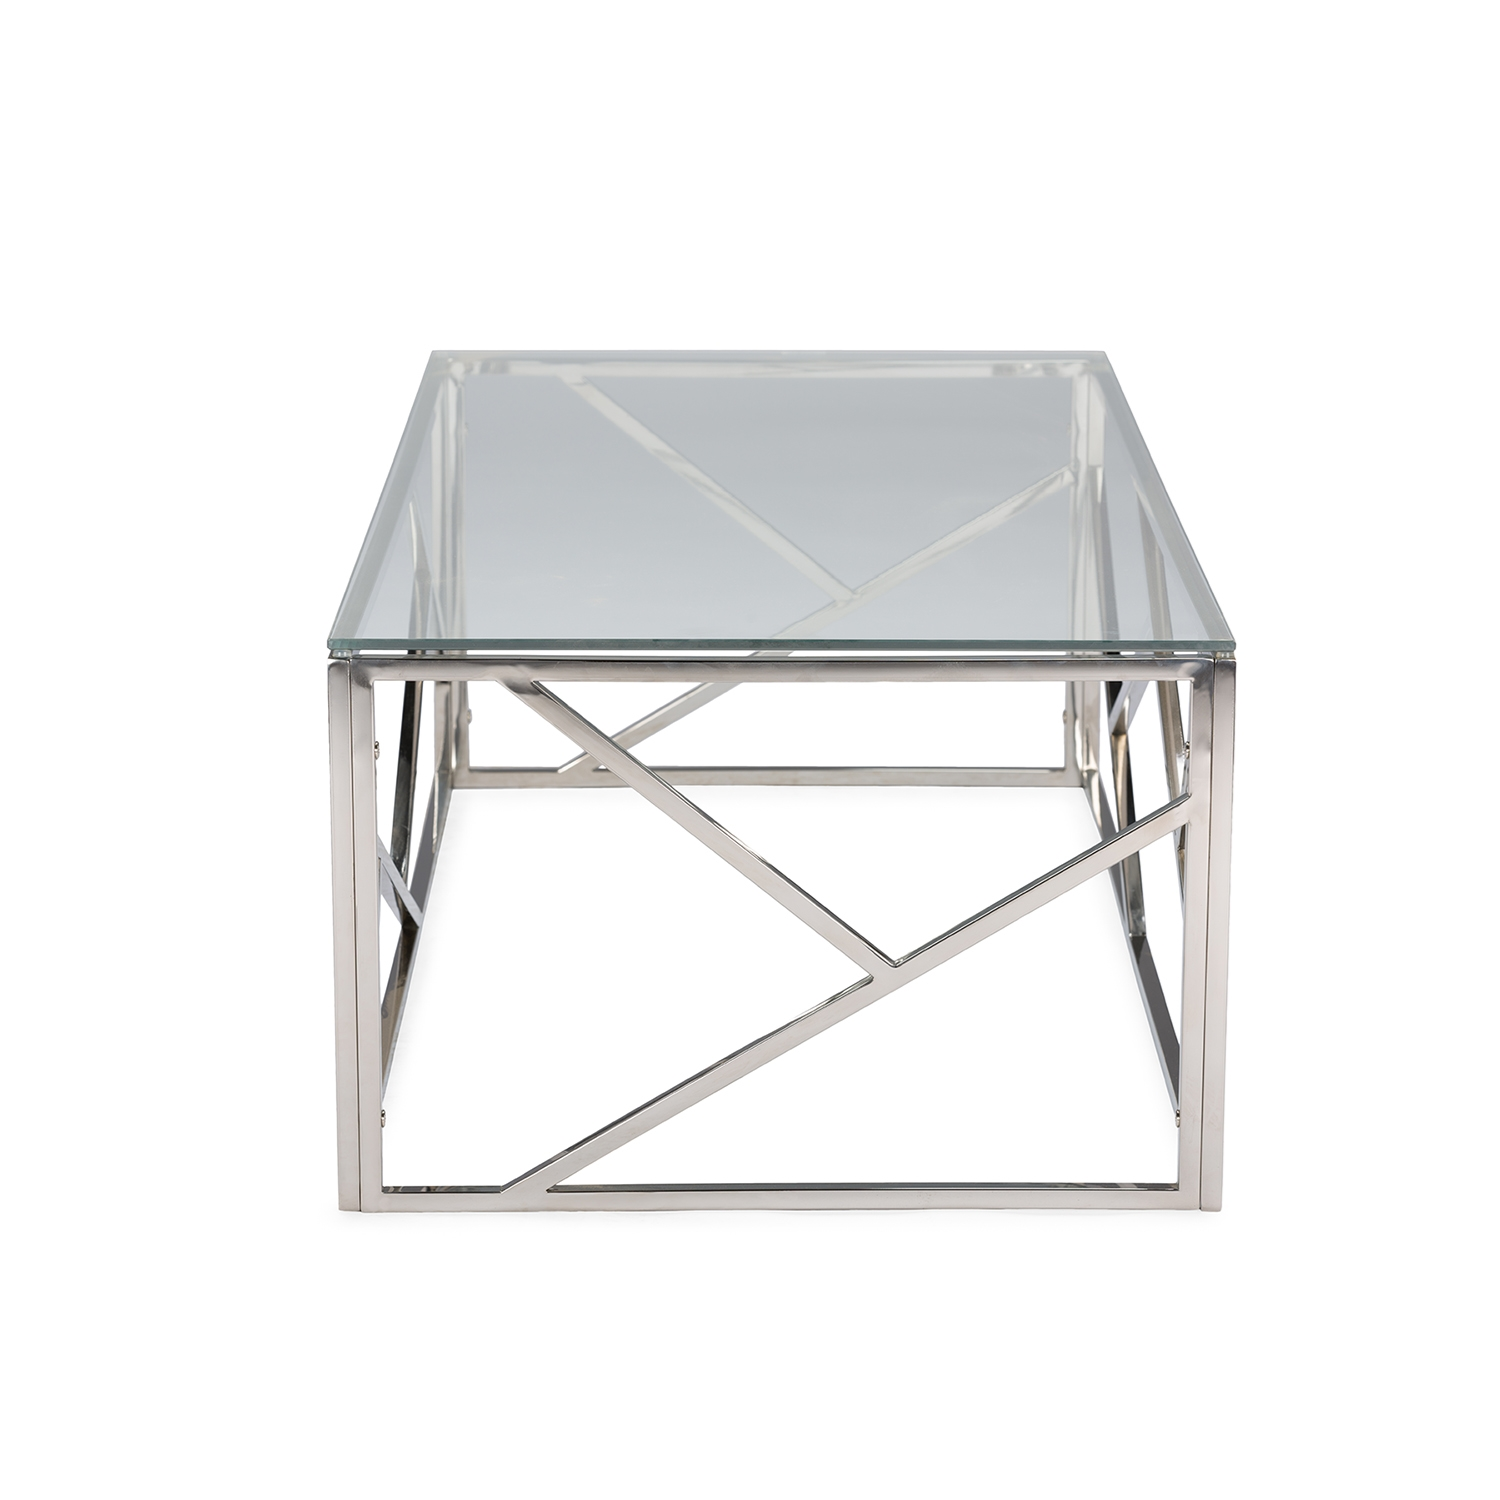 stainless steel modern furniture. baxton studio fiona modern and contemporary stainless steel coffee table with tempered glass top bsogy furniture o